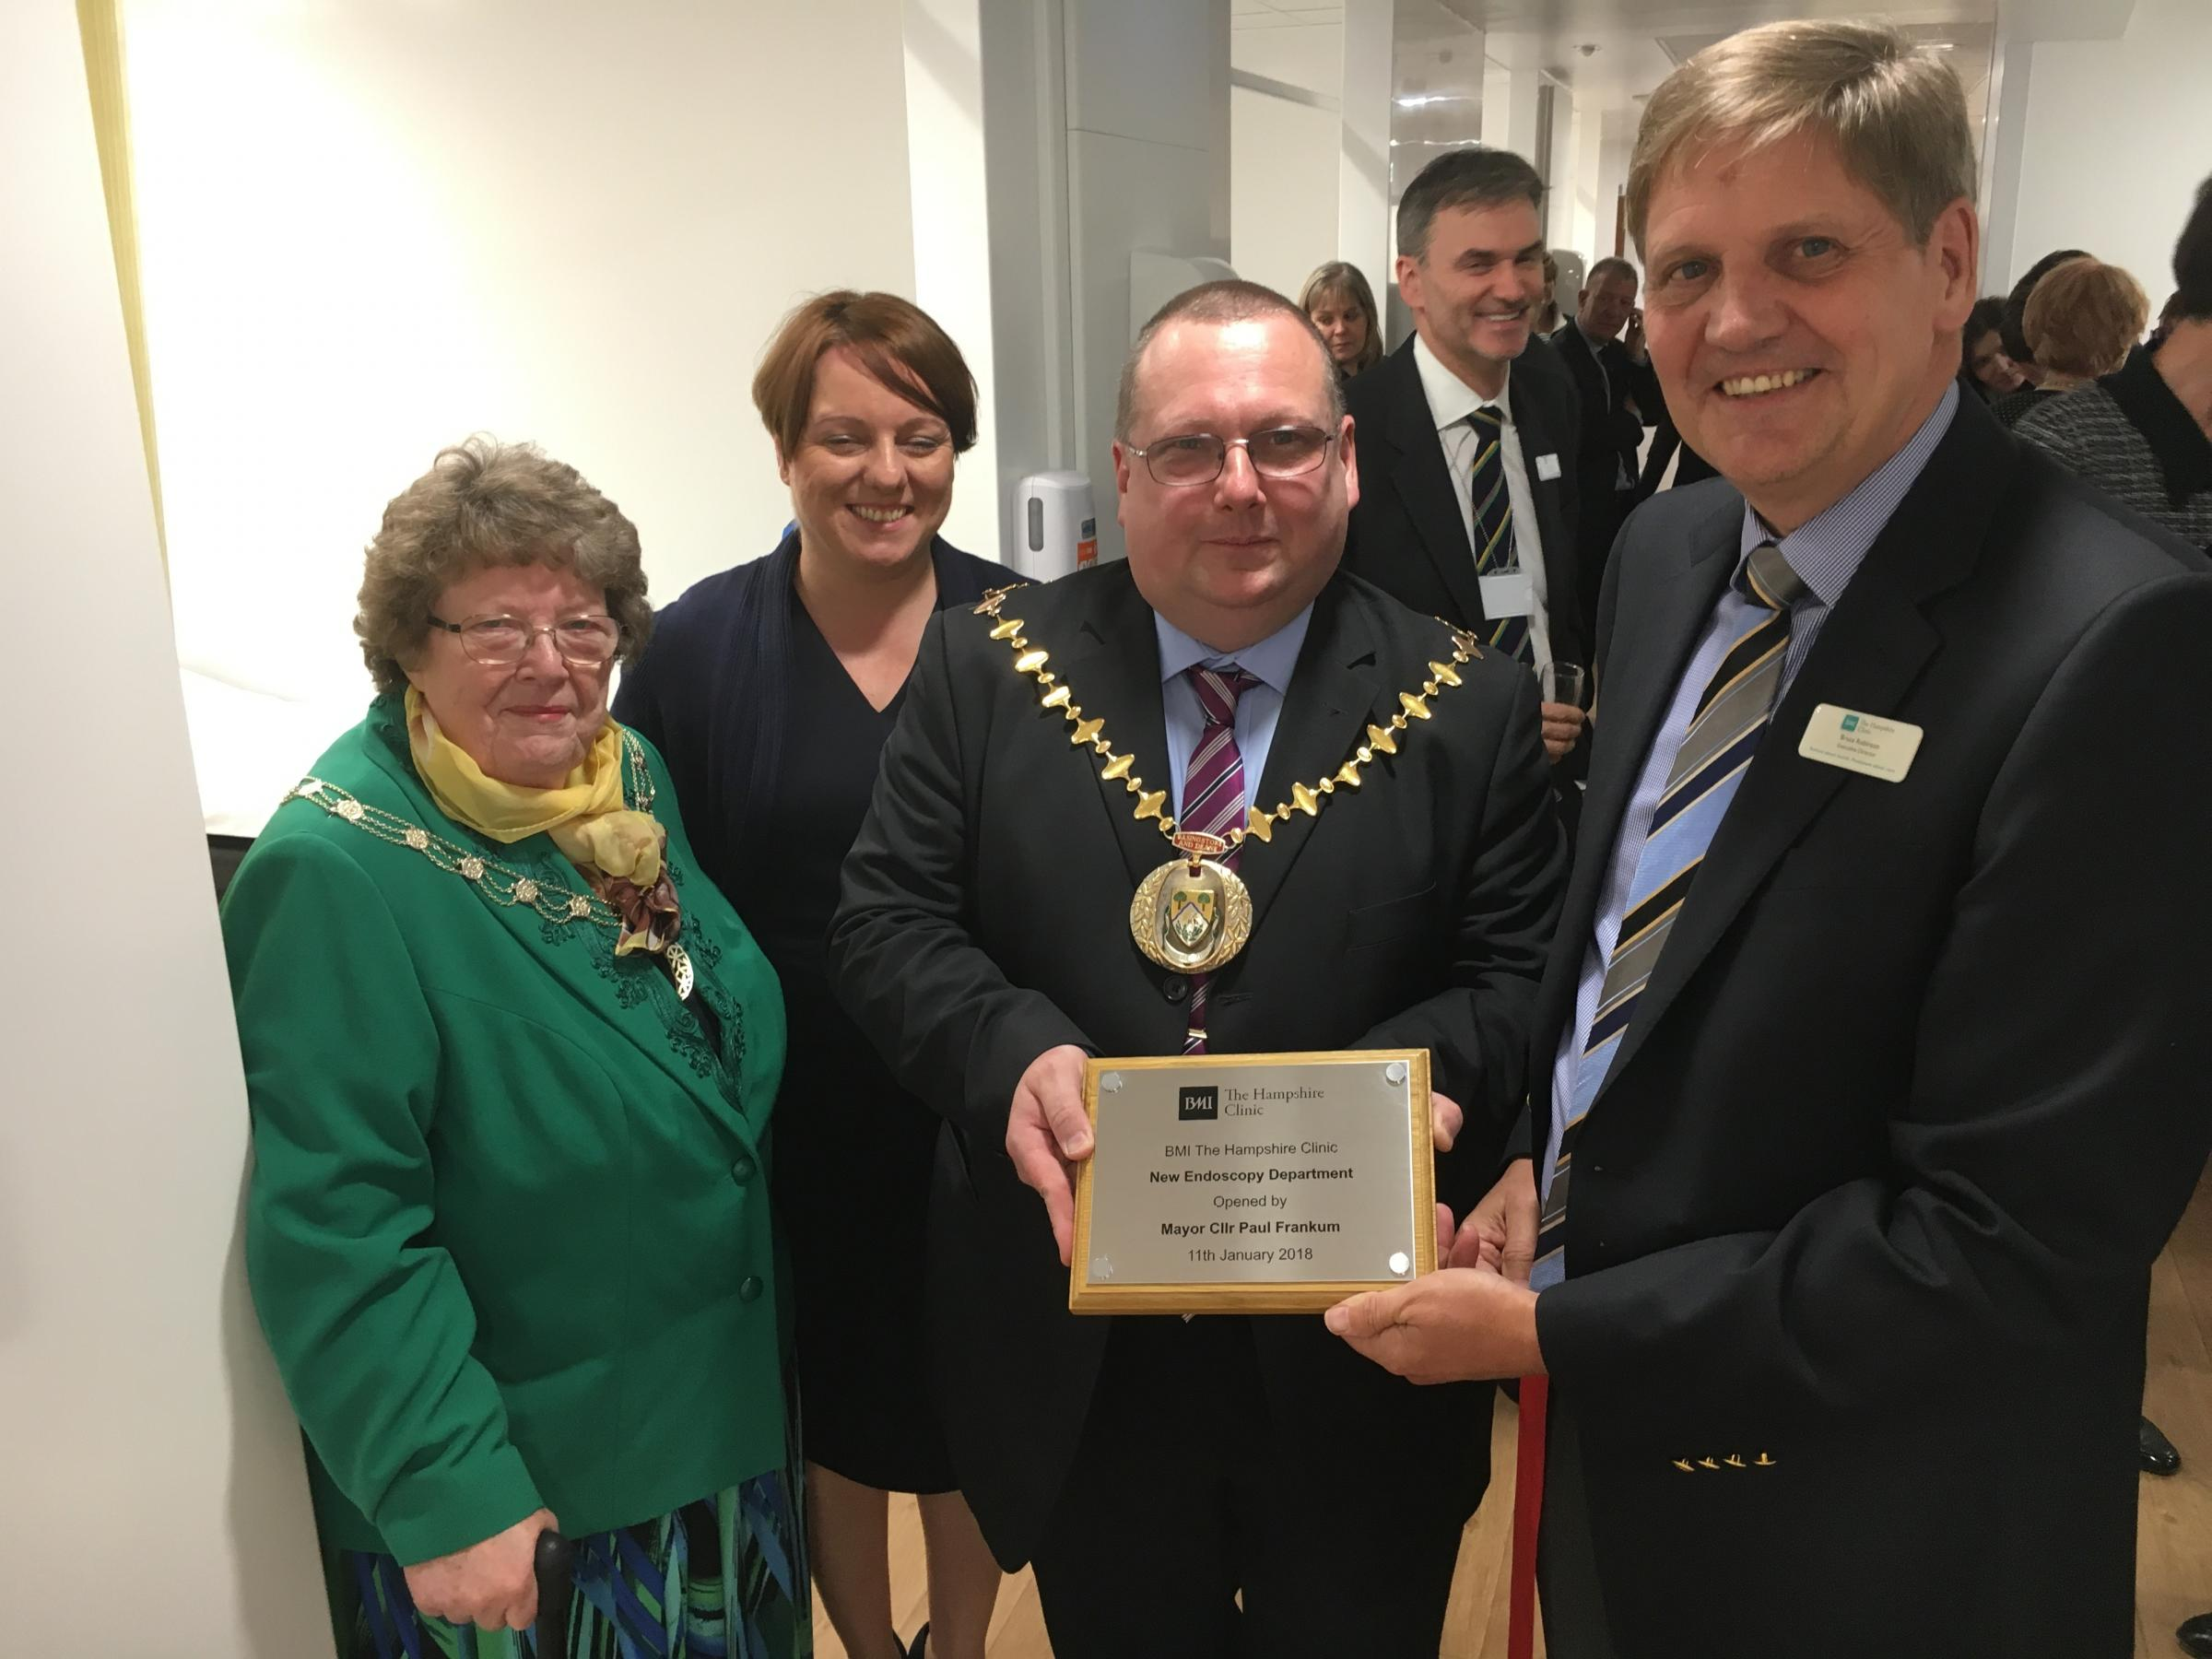 From left, mayoress Jane Frankum, Director of operations Nichol Freestone, mayor Paul Frankum, and executive director Bruce Robinson with a plaque to mark the official opening of the endoscopy unit at BMI Hampshire Clinic in Basingstoke